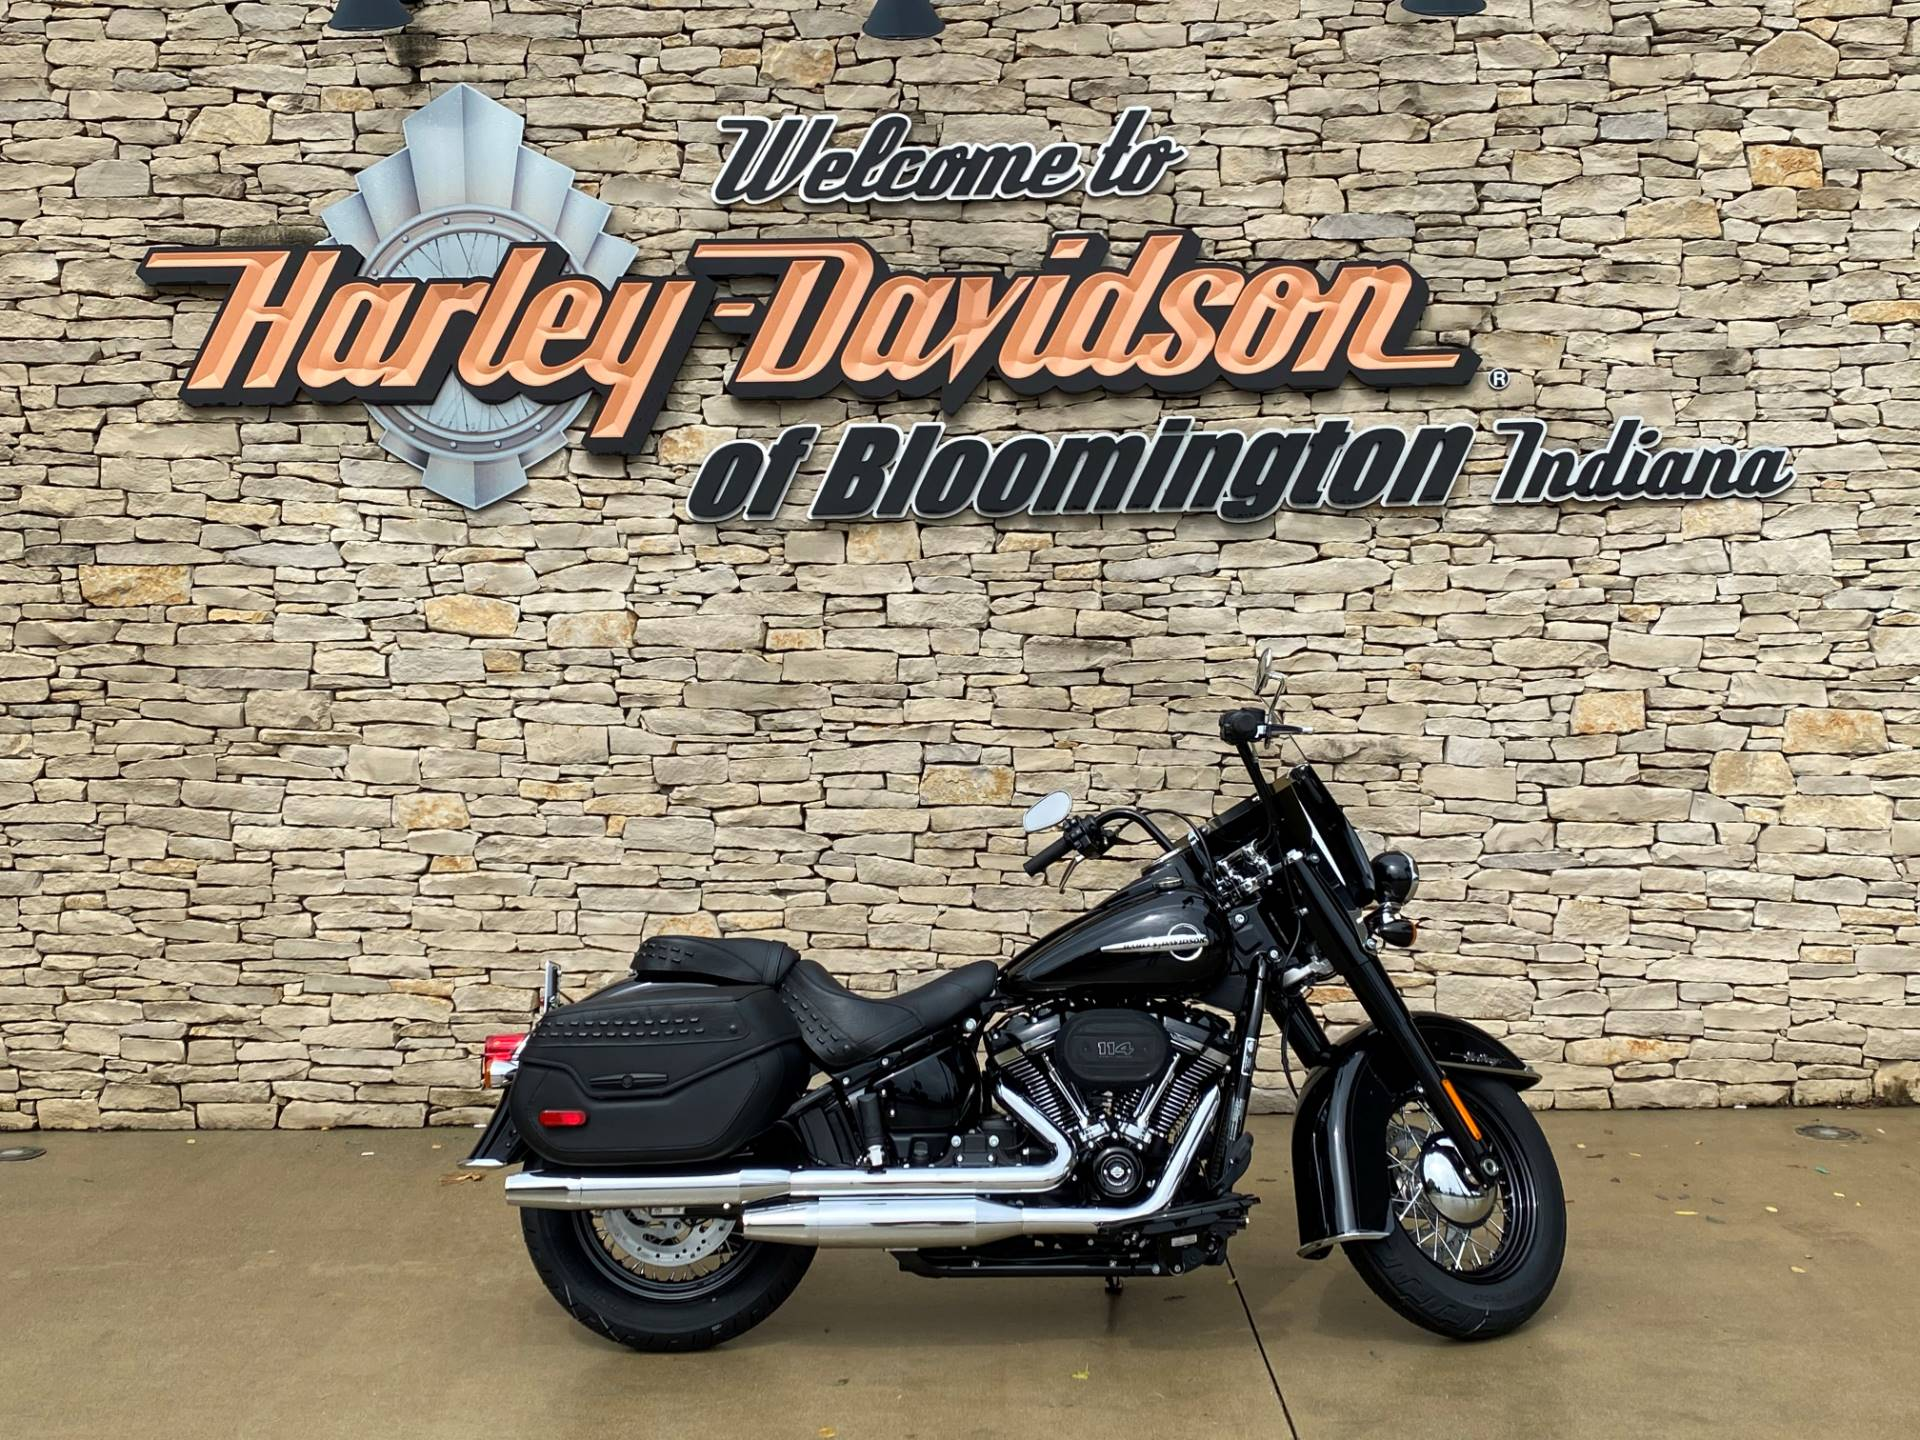 2020 Harley-Davidson Heritage Classic 114 in Bloomington, Indiana - Photo 1